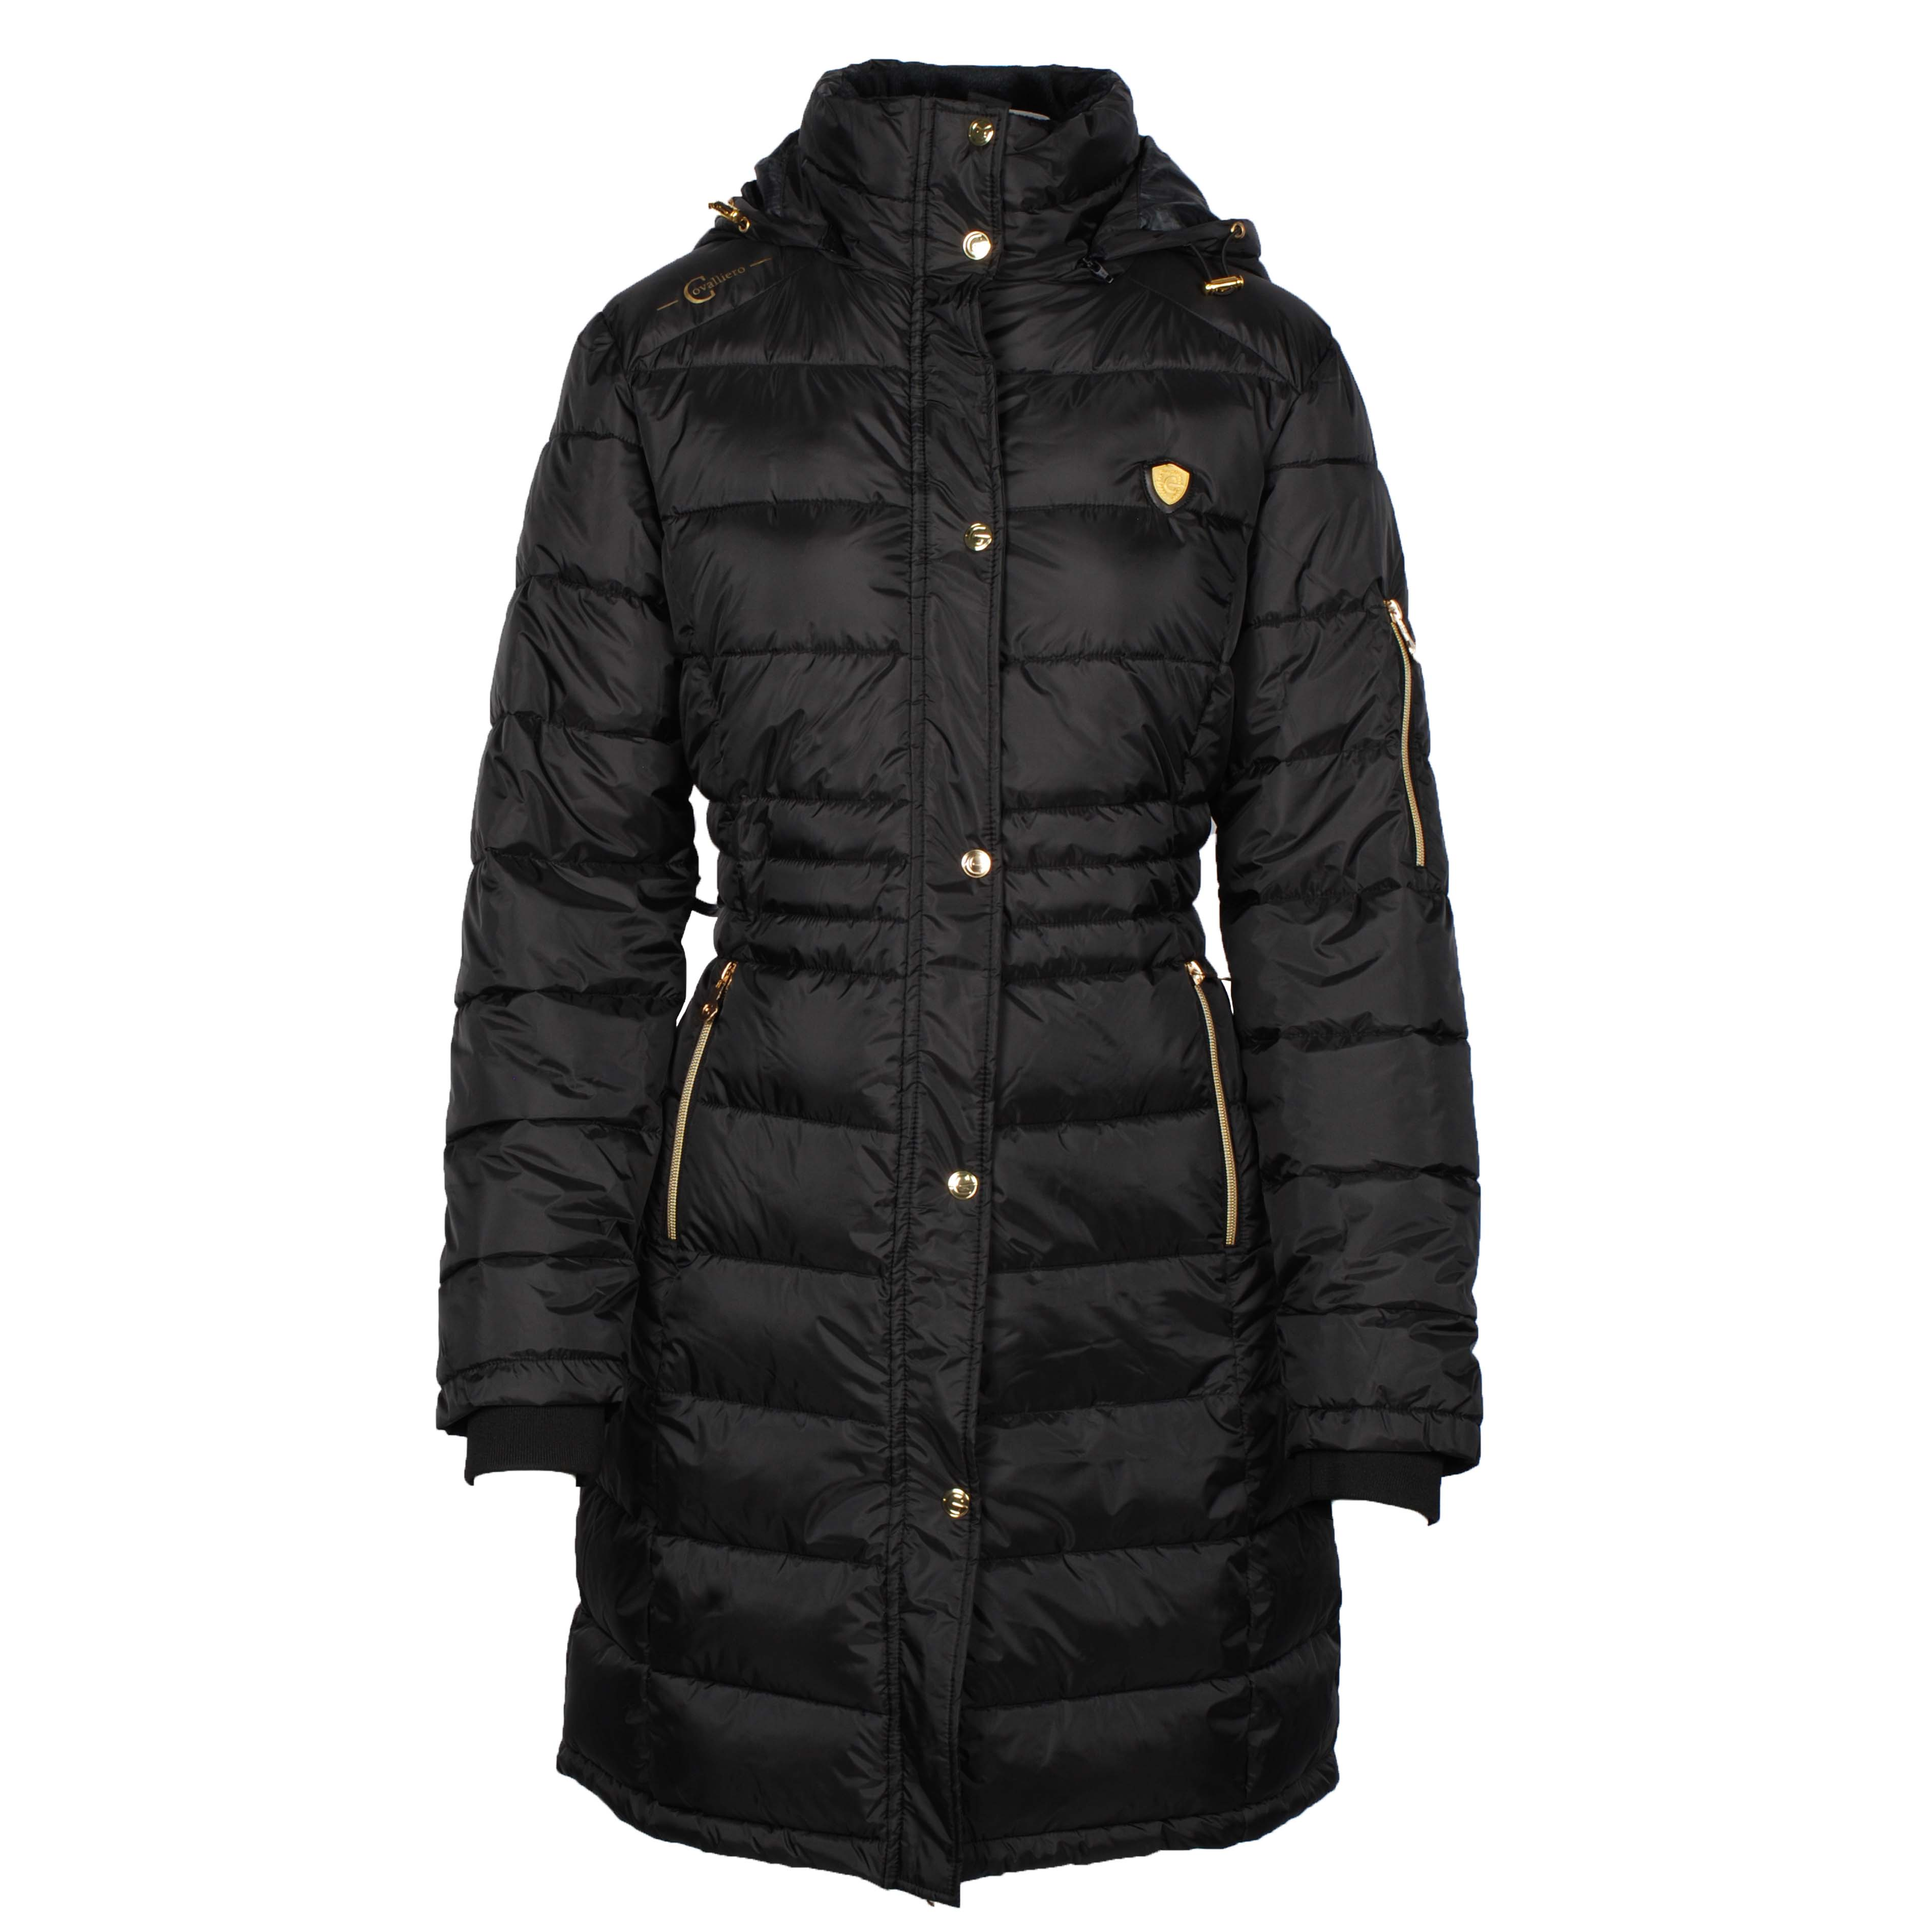 Covalliero Quilted Long jack donkergrijs maat:xl